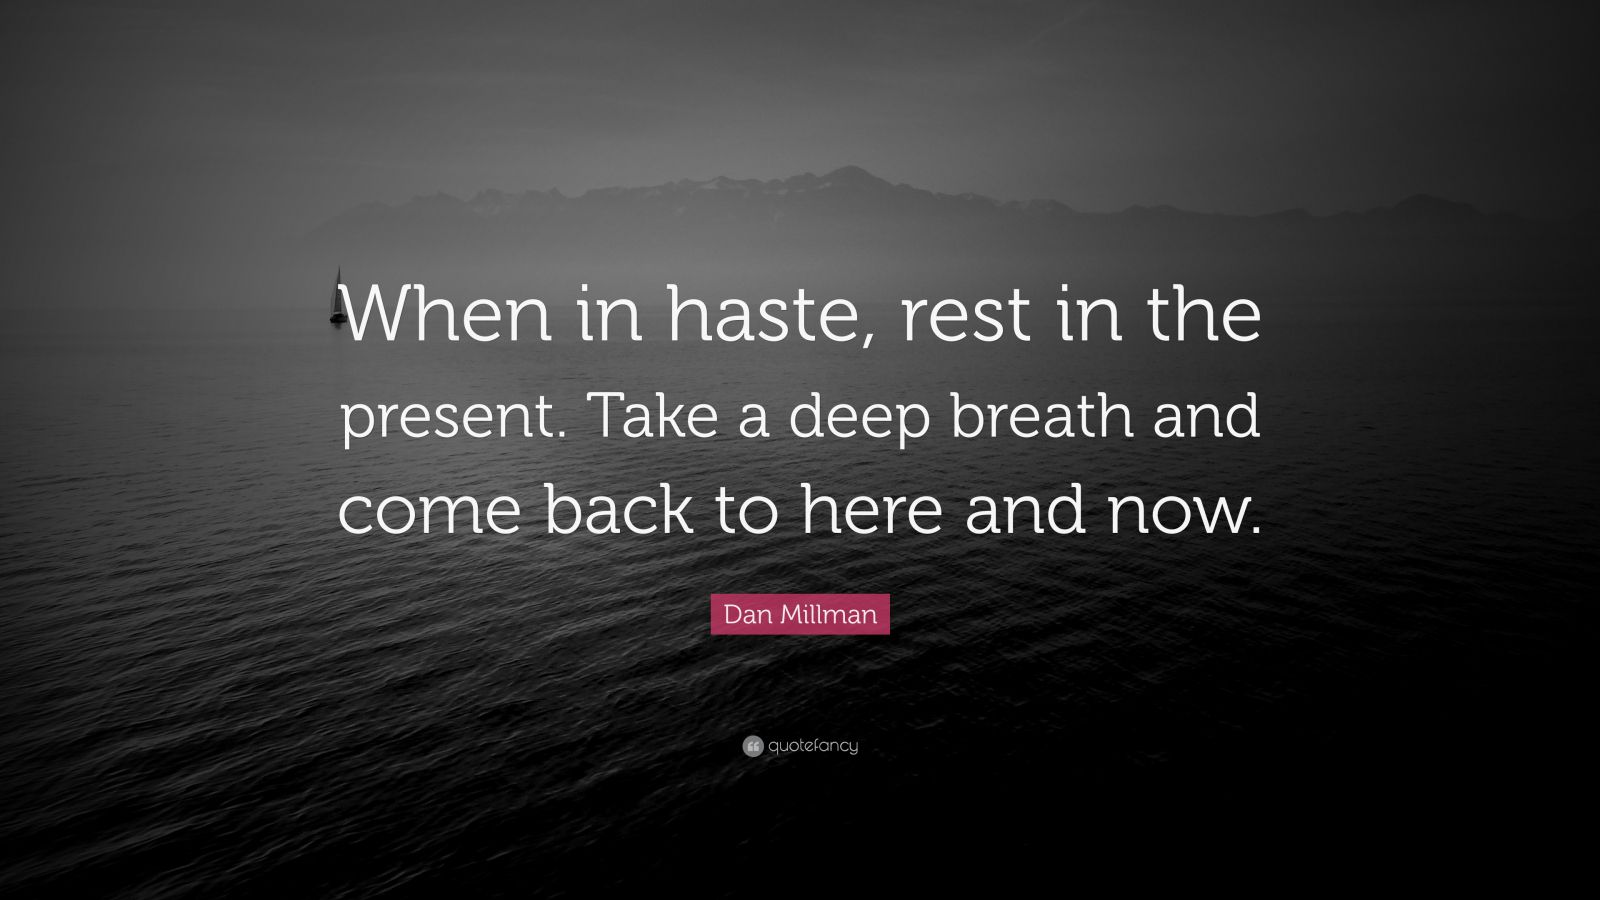 """Dan Millman Quote: """"When in haste, rest in the present. Take a deep breath and come back to here and now."""""""